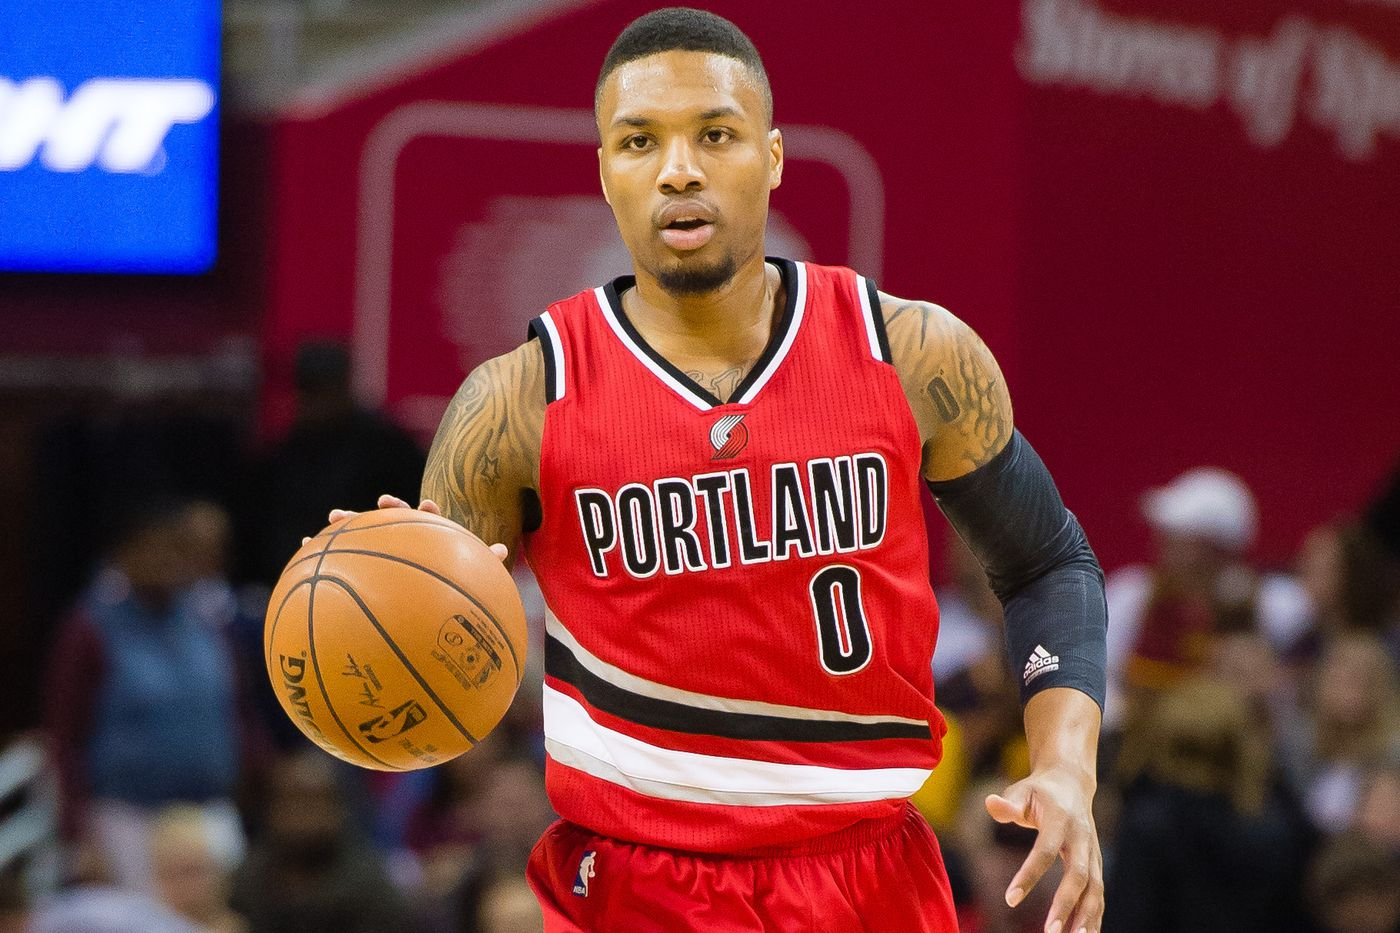 Is Damian Lillard the Greatest Point Guard in Blazers History